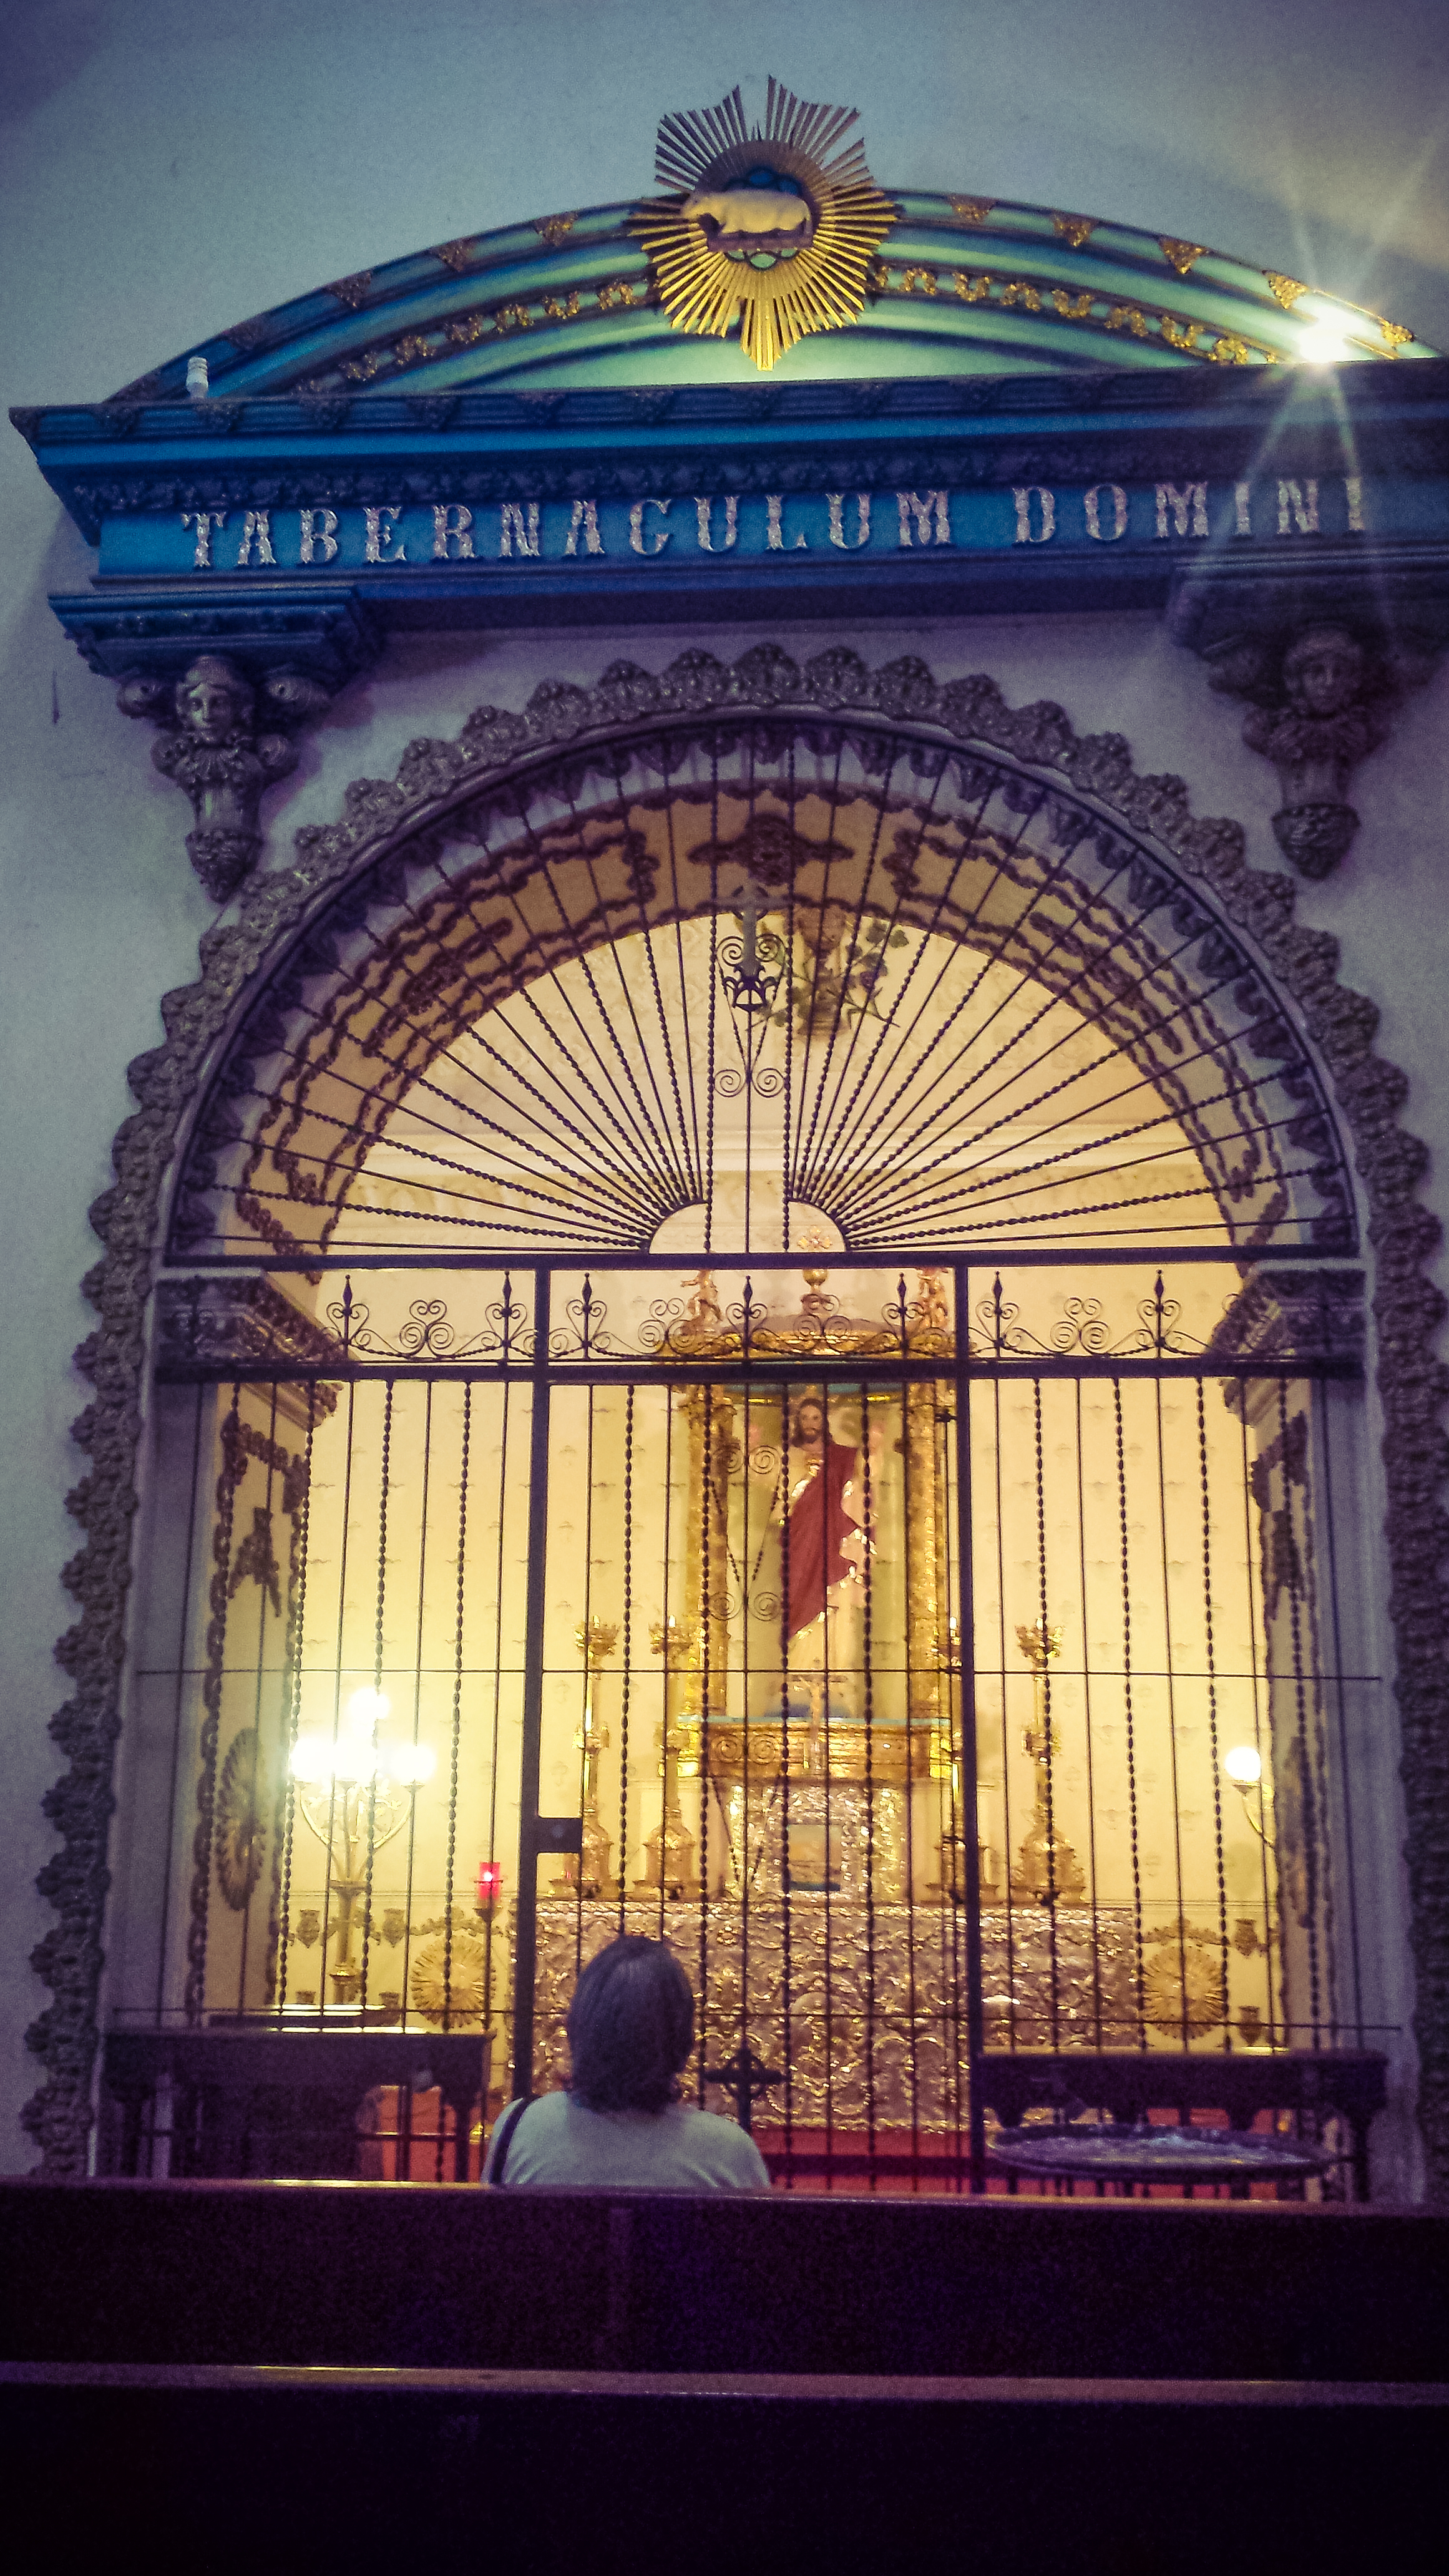 Inside the Old Cathedral